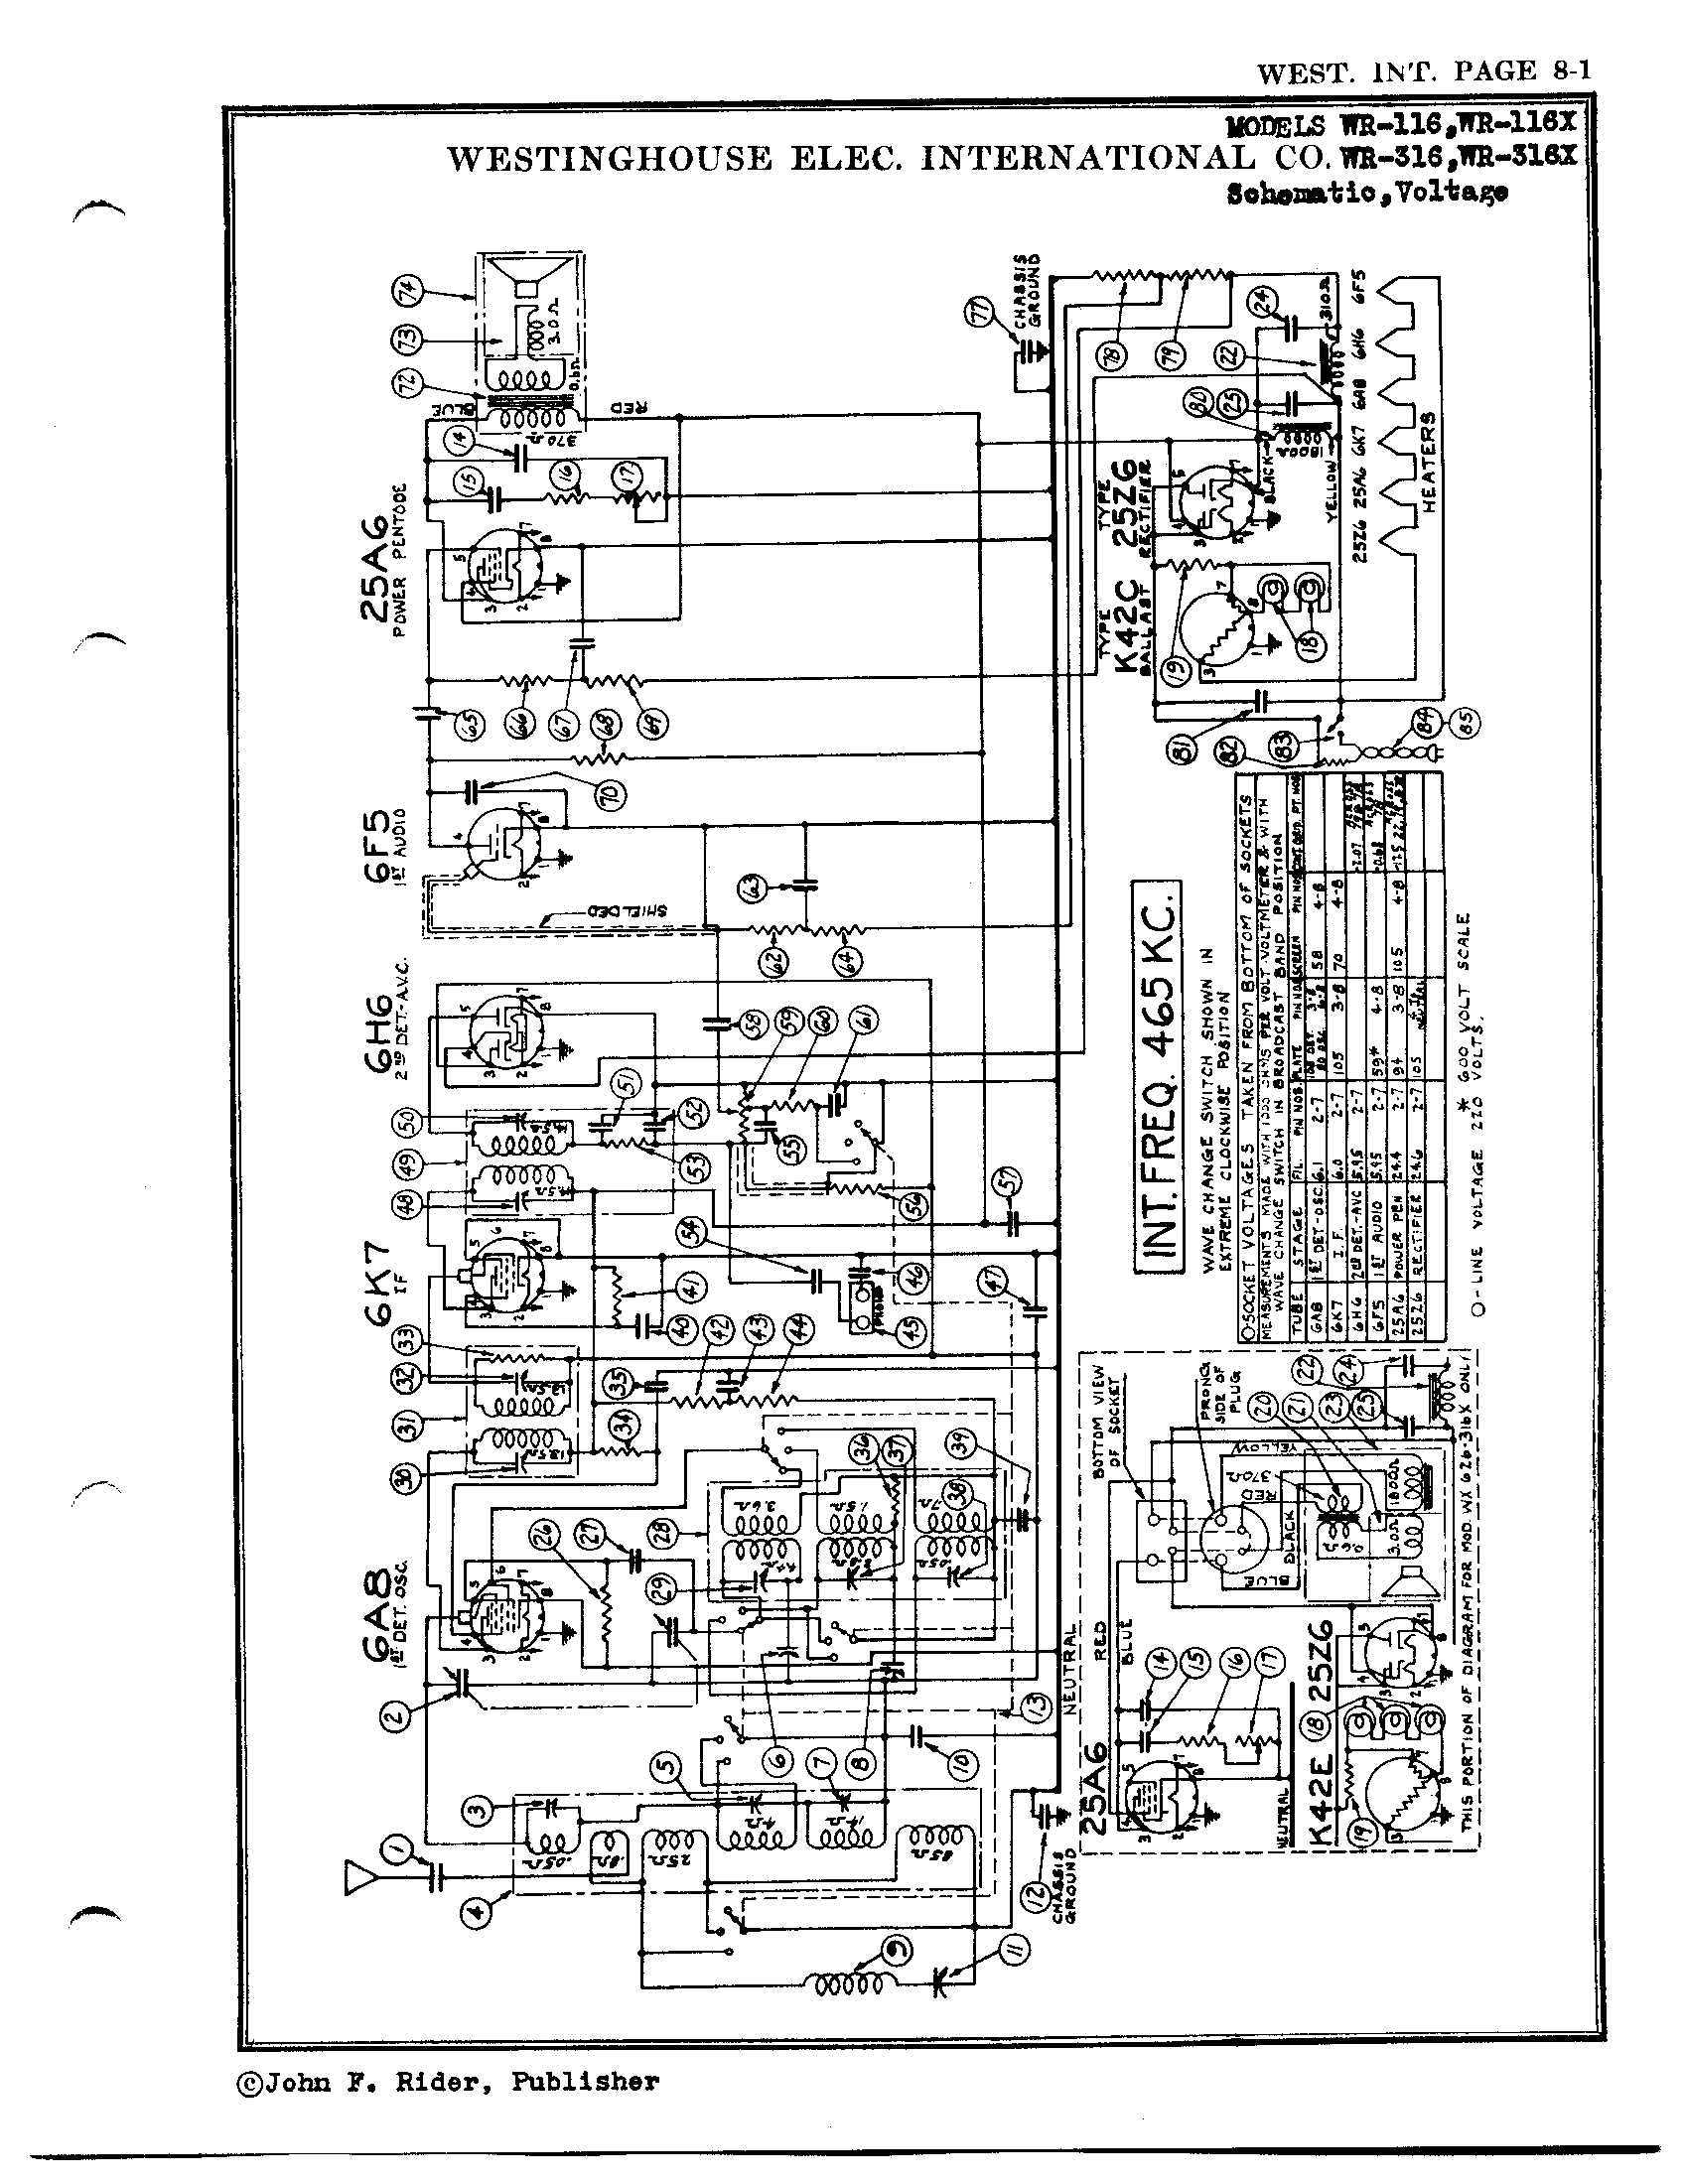 Westinghouse Electric Corp Wr 316